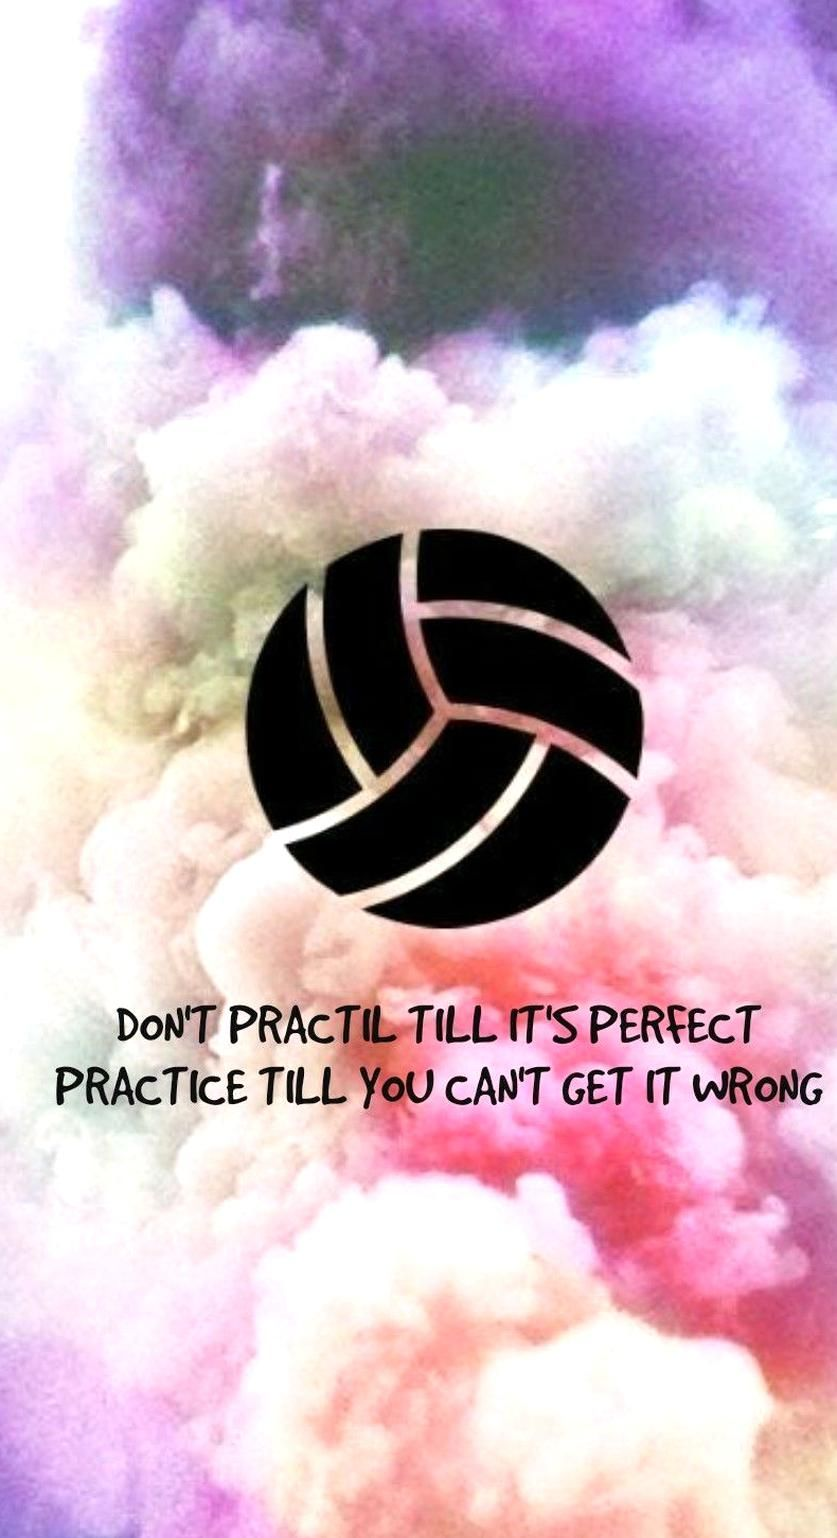 5 Wallpaper Motivation Wallpaper Volleyball Quotes in 5